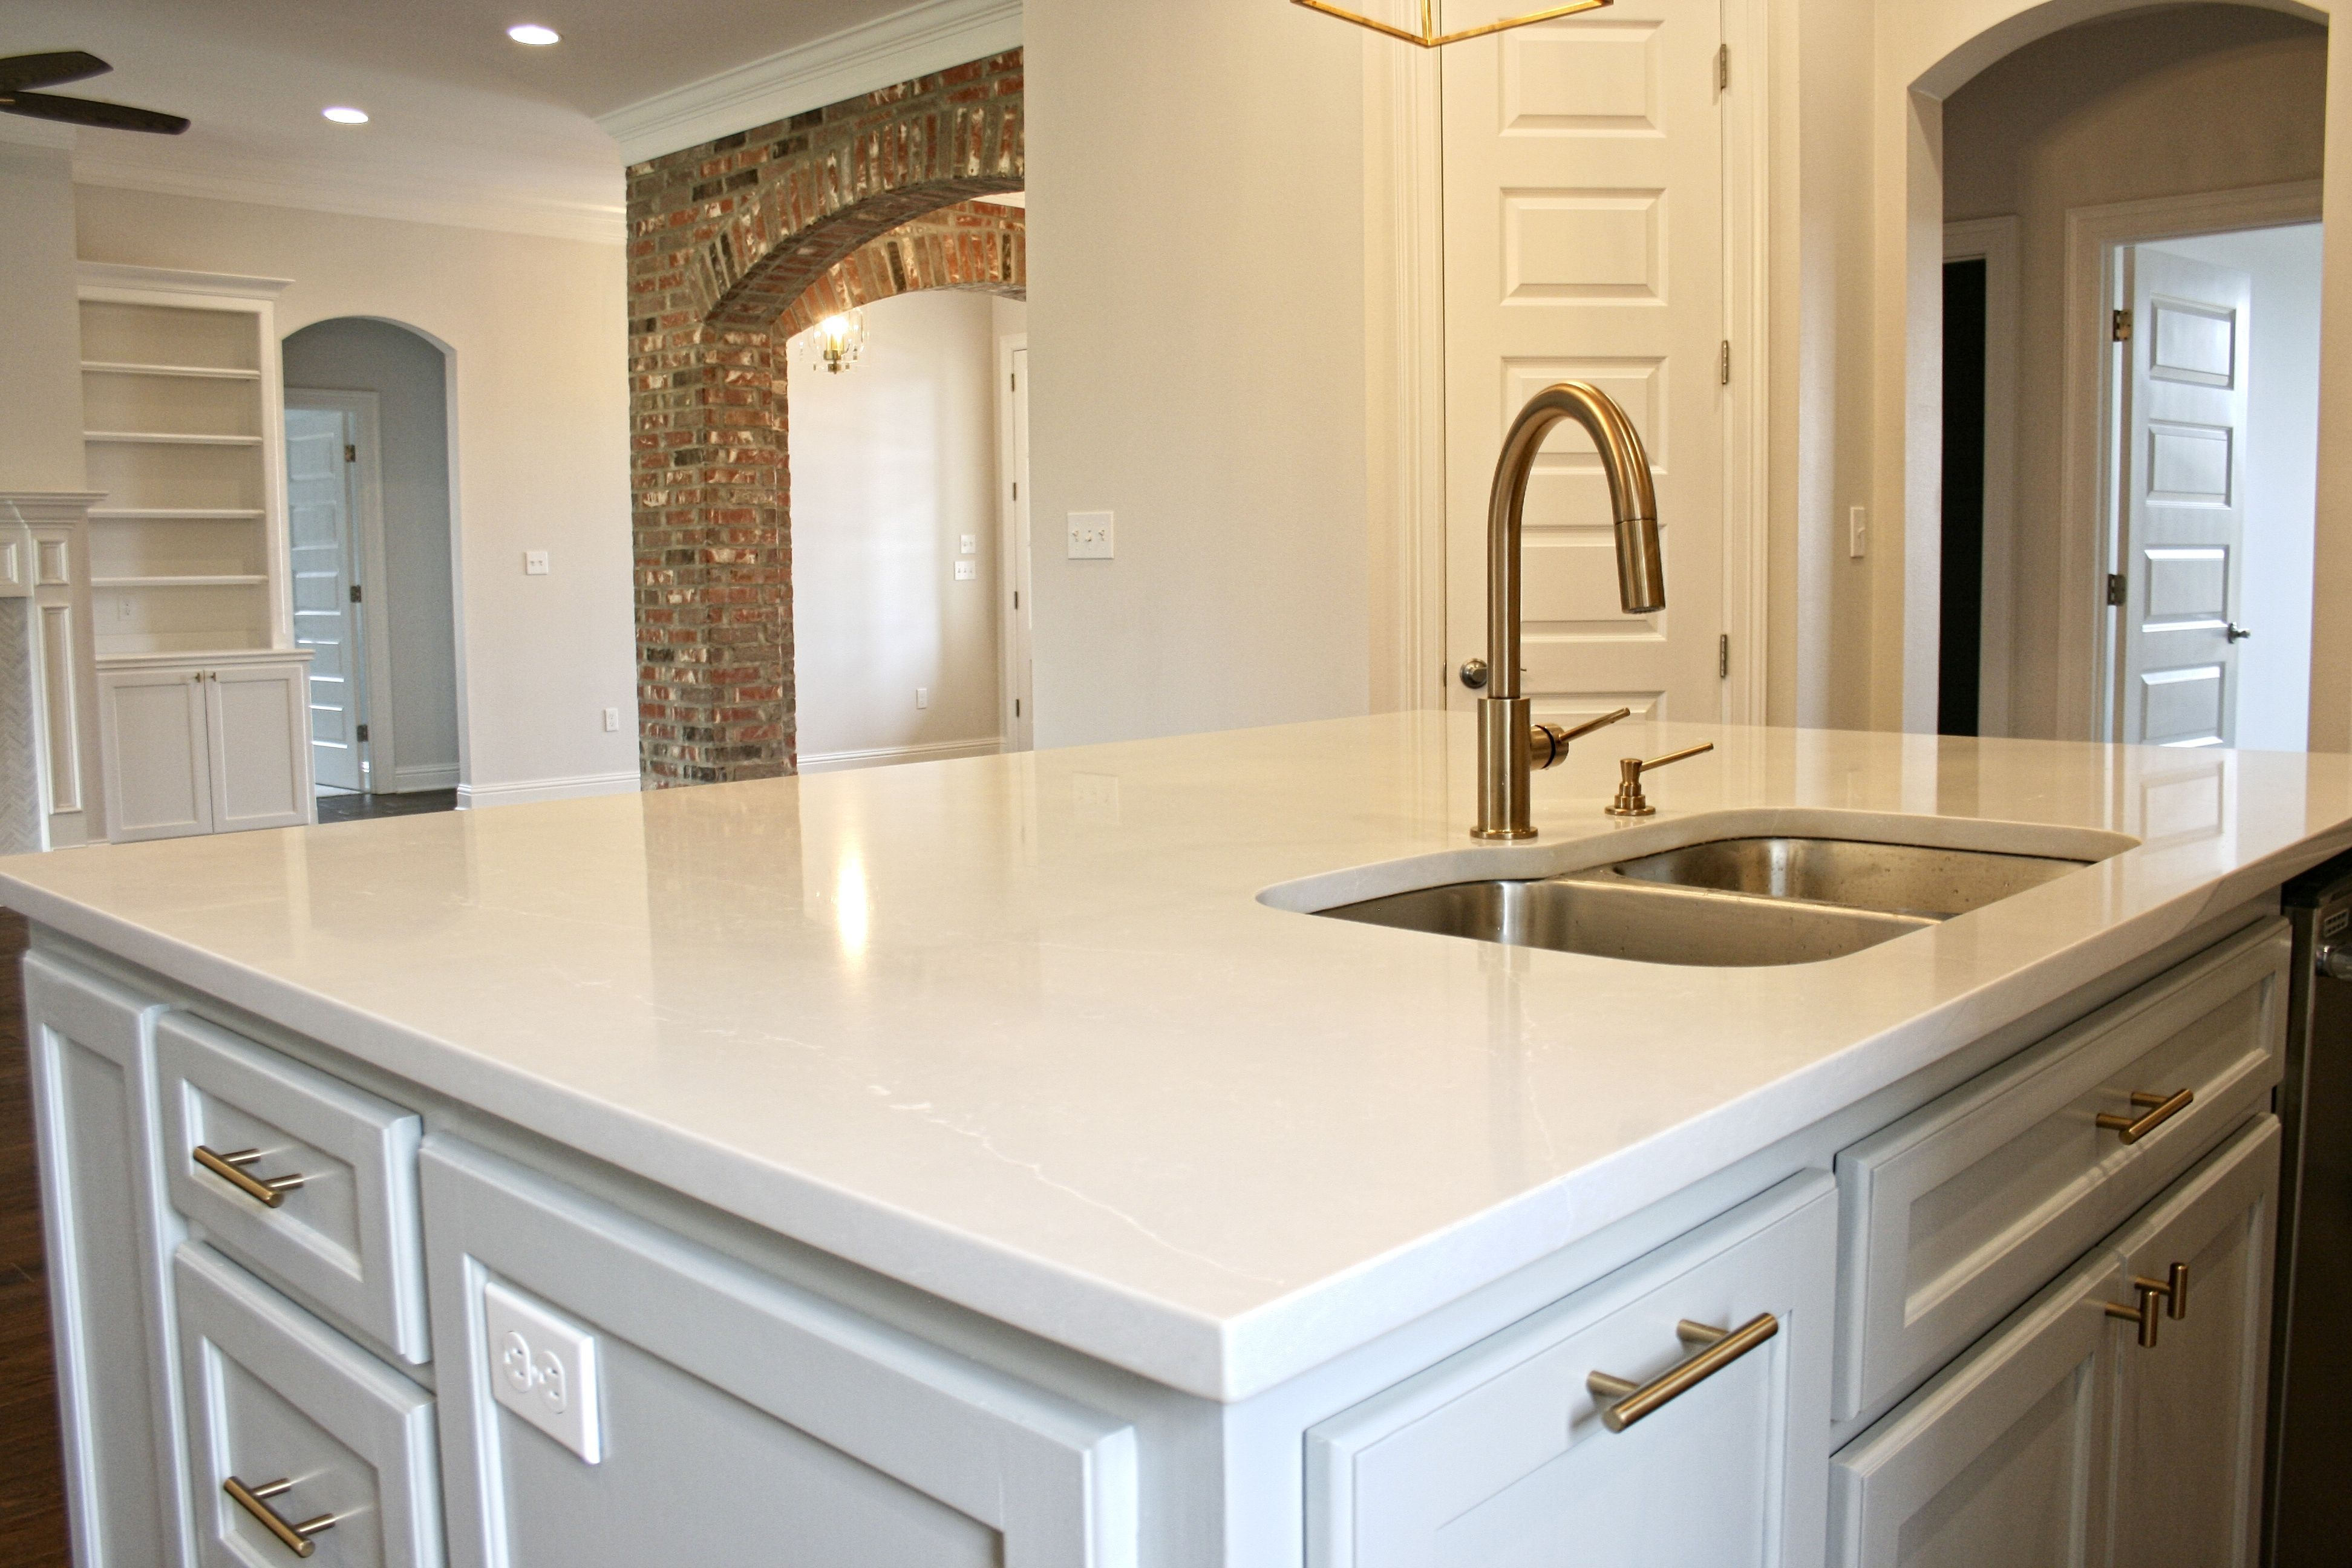 If You Re Wanting A Marble Countertop Without All The Headache Then Check Out Quartz Advanced Technology Creates In 2020 With Images Countertops Marble Countertops Kitchen Design